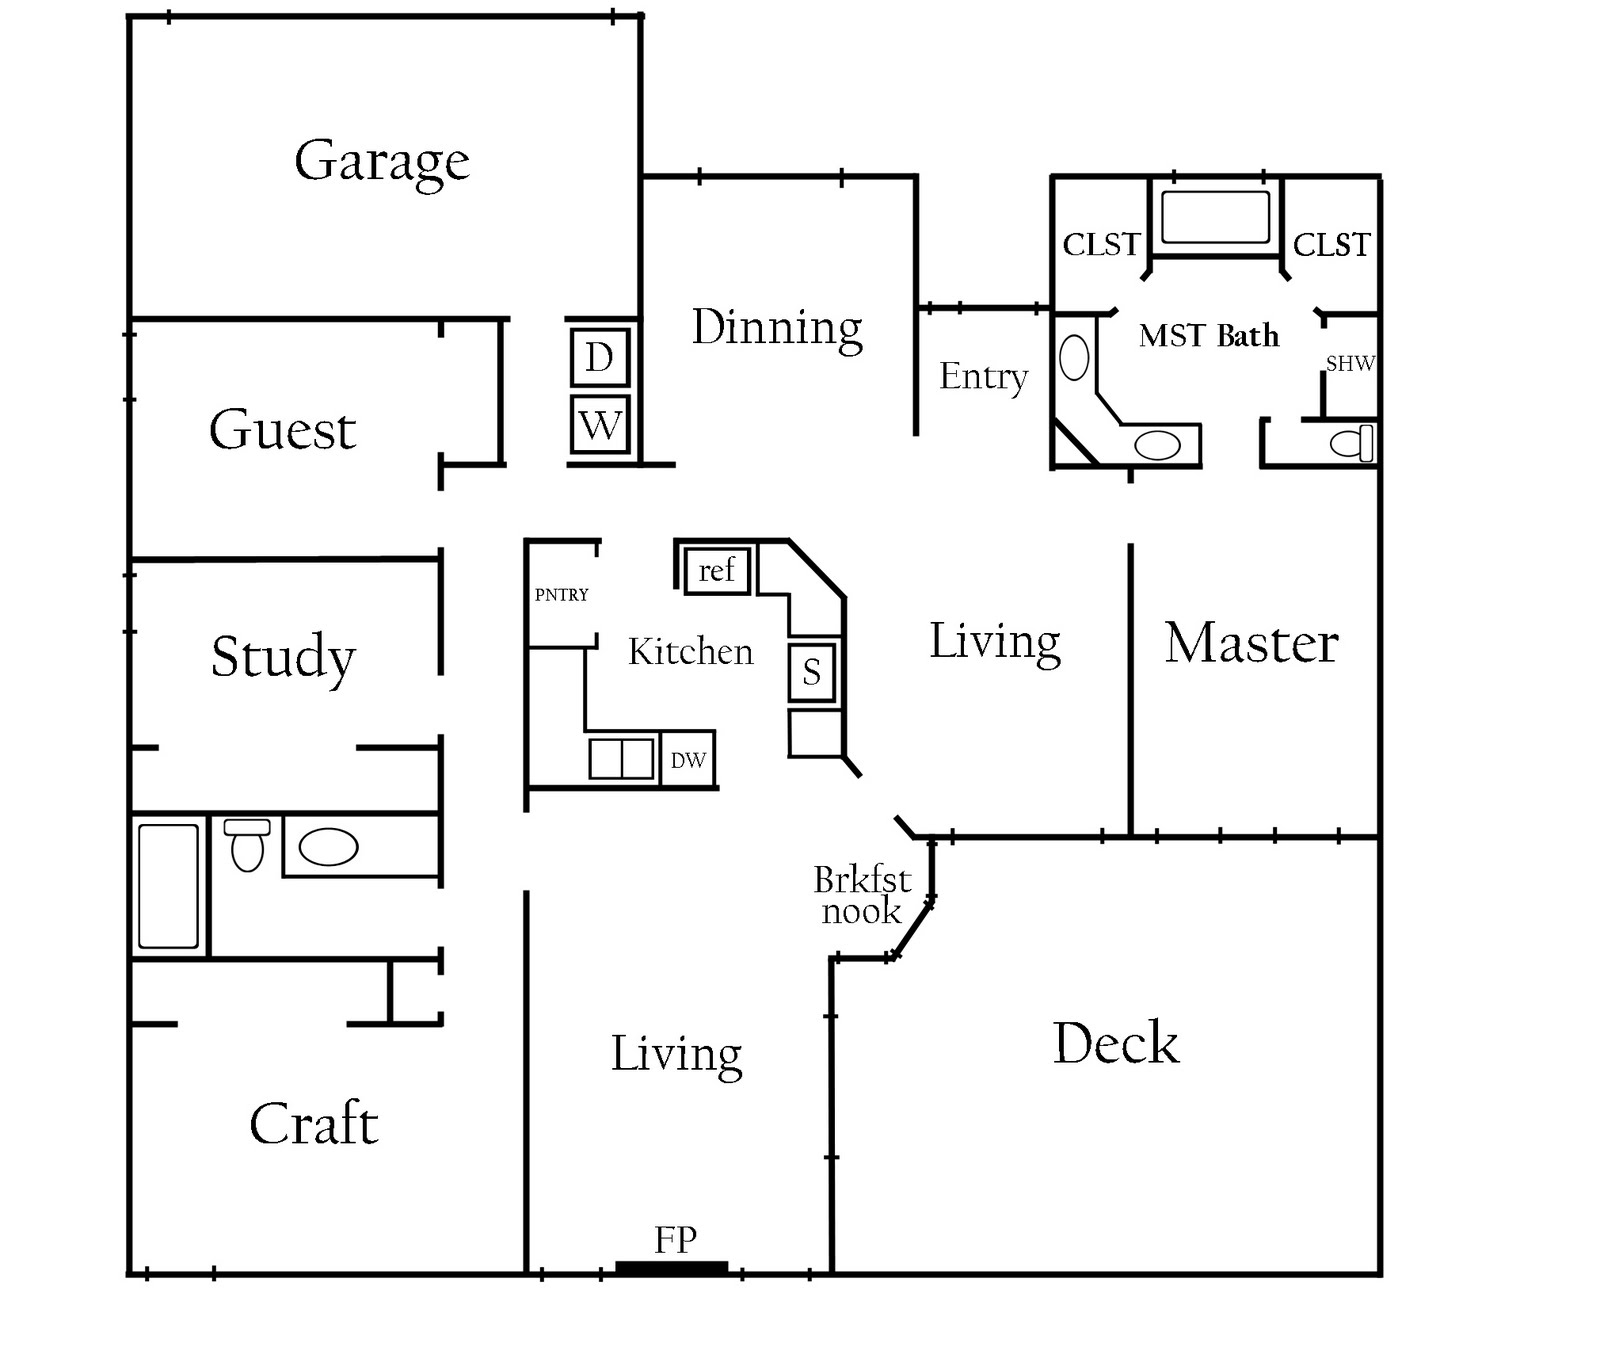 corinnea s castle floor plan of my new house the little woods house february 2011